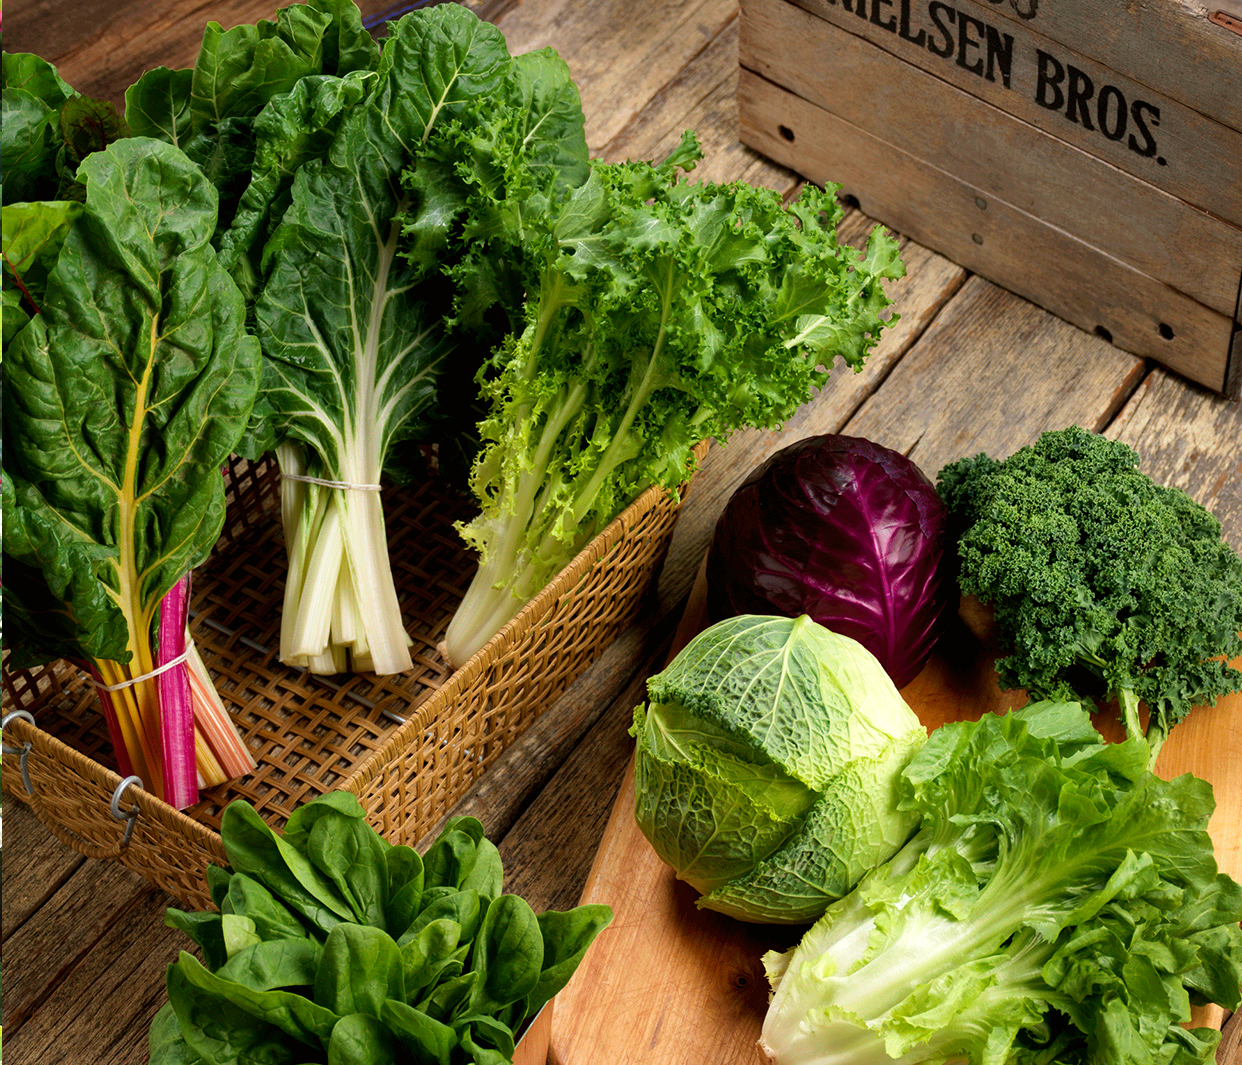 photo of assorted leafy greens on a kitchen counter